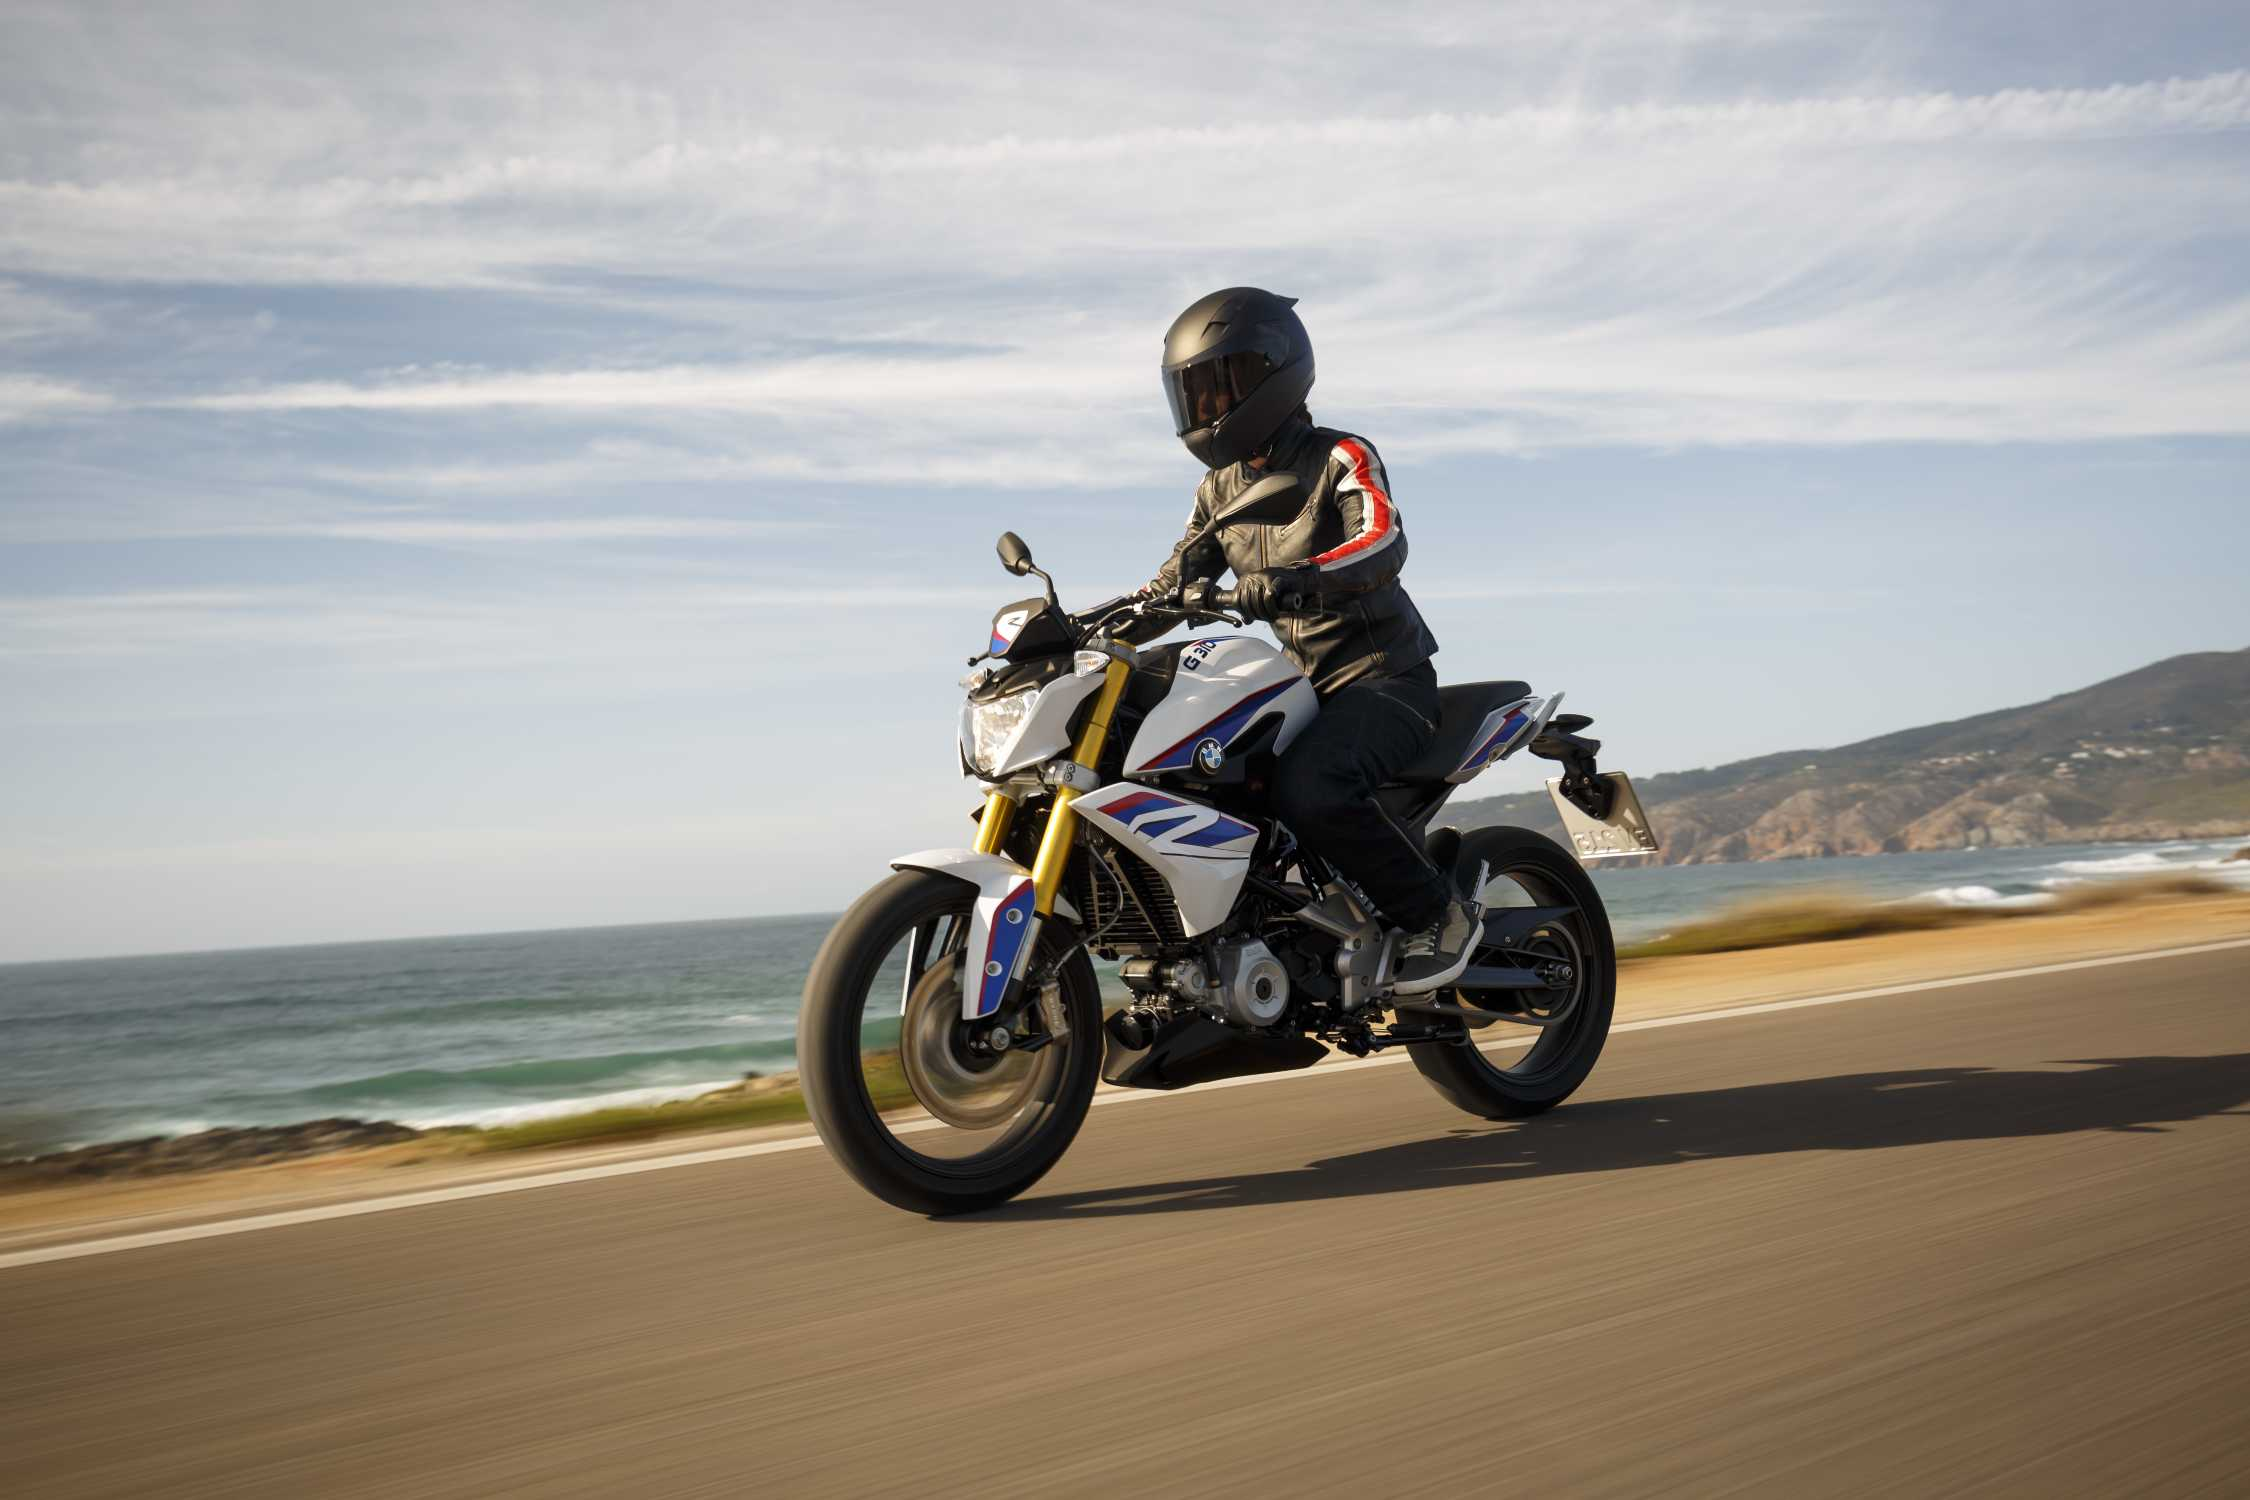 Take your BMW G 310 R to the next level